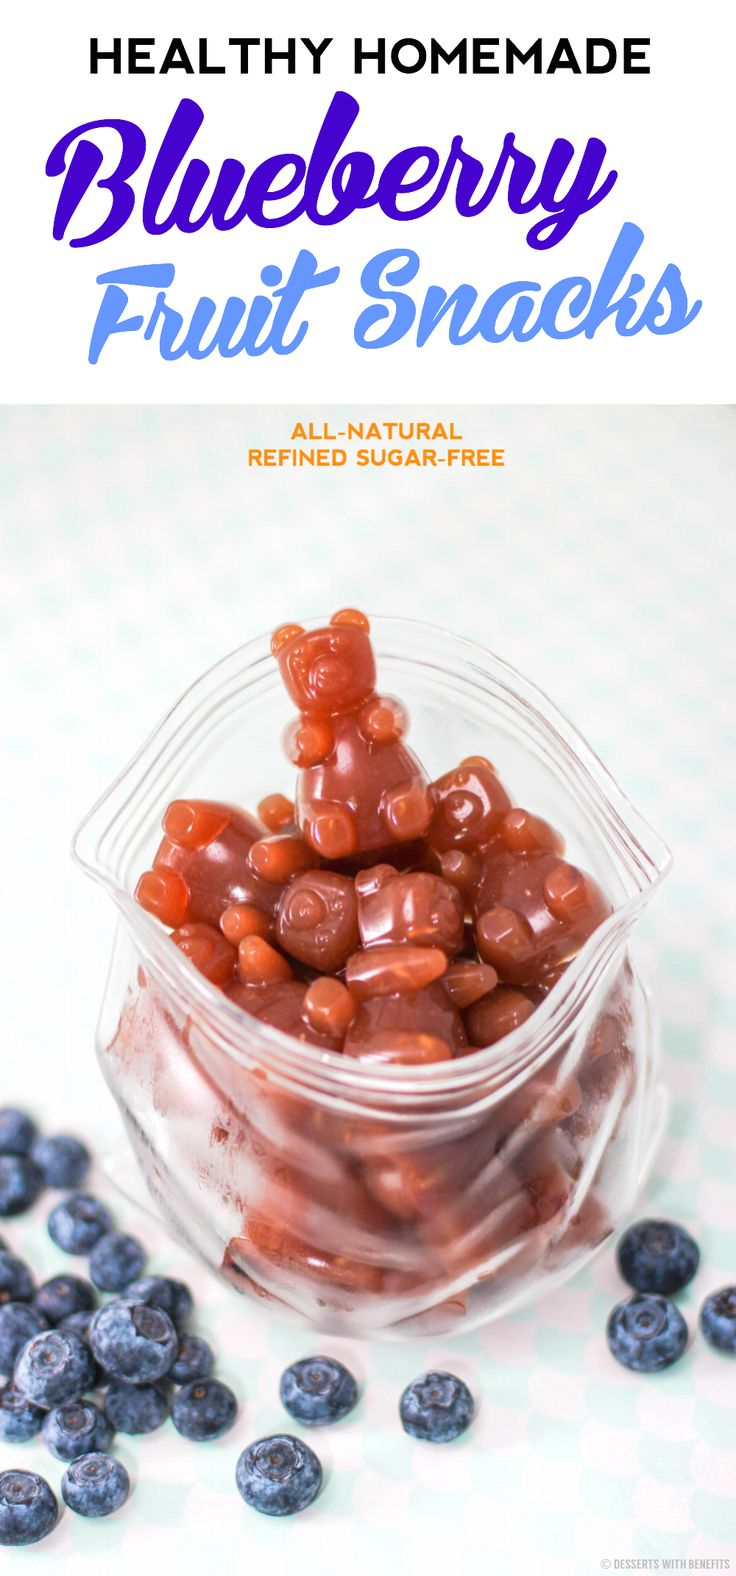 Healthy Homemade Blueberry Fruit Snacks! Just like Welch's but without the sugar, high-fructose corn syrup and artificial food coloring!  [all natural, fat free, refined sugar free, gluten free, dairy free]